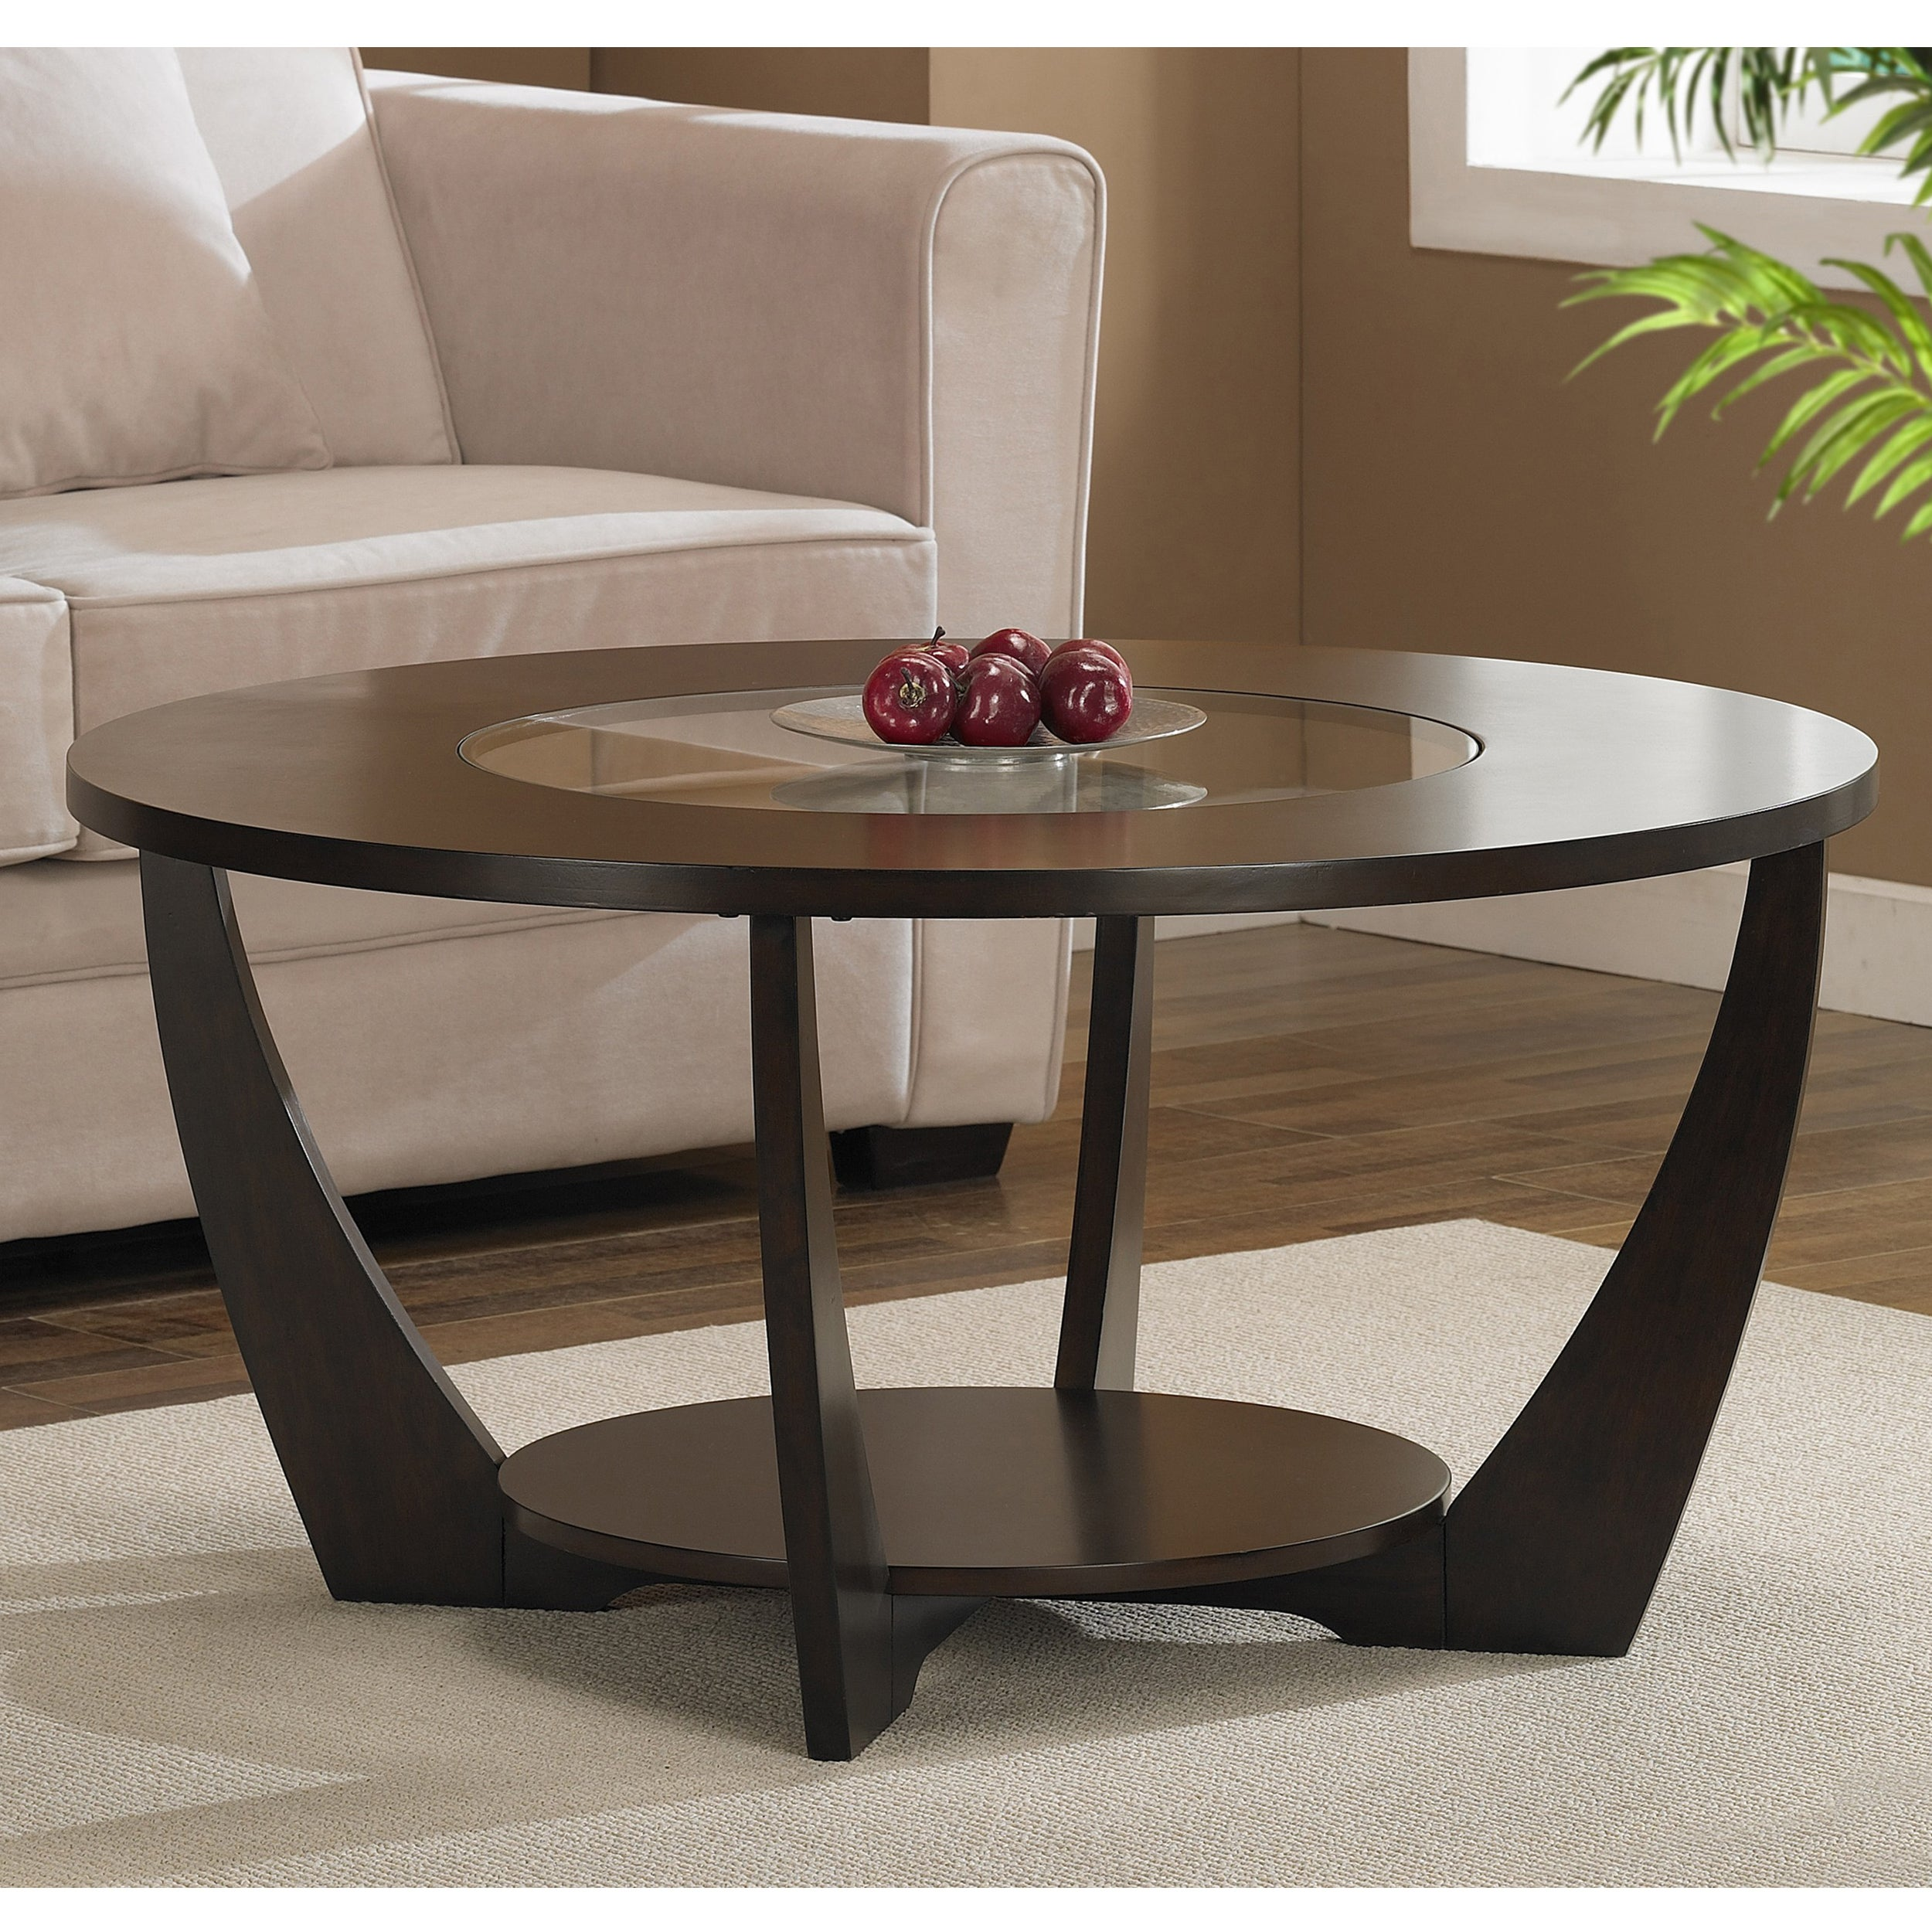 Expresso Coffee Table.Strick Bolton Archer Espresso Coffee Table With Shelf